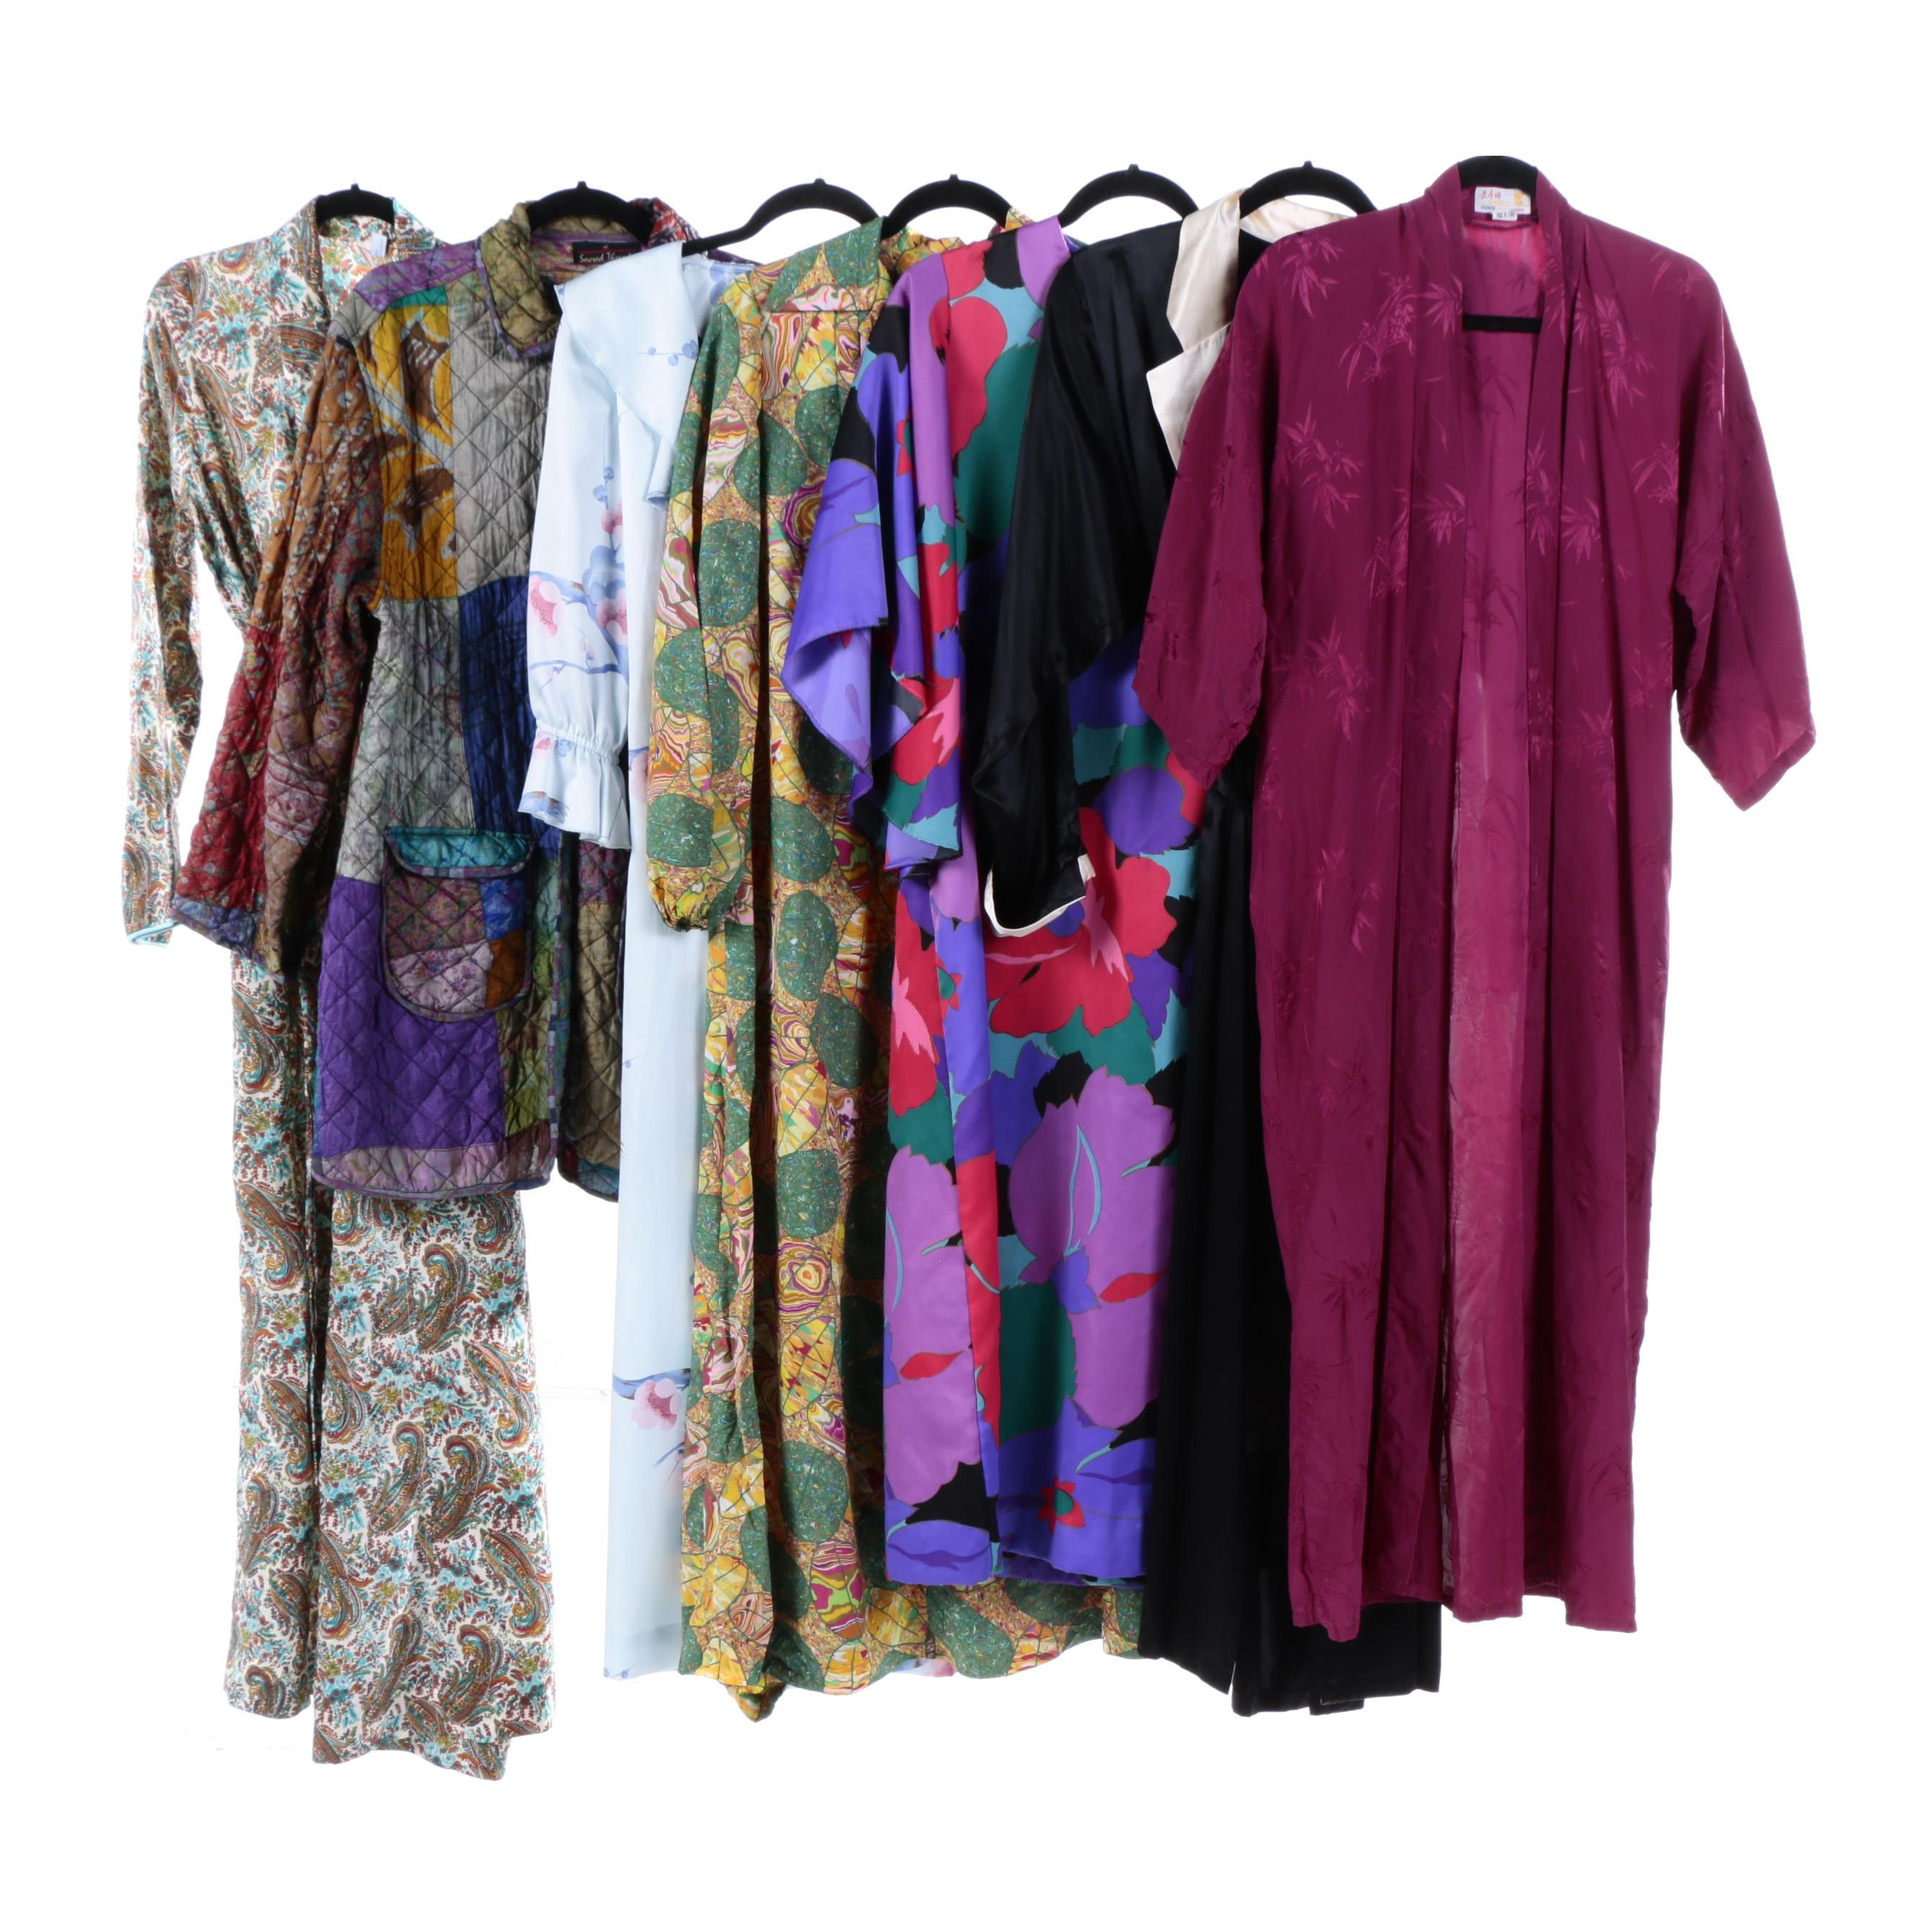 Women's 1970s Vintage Maxi Dresses, Robes, and Kaftans Including Silk